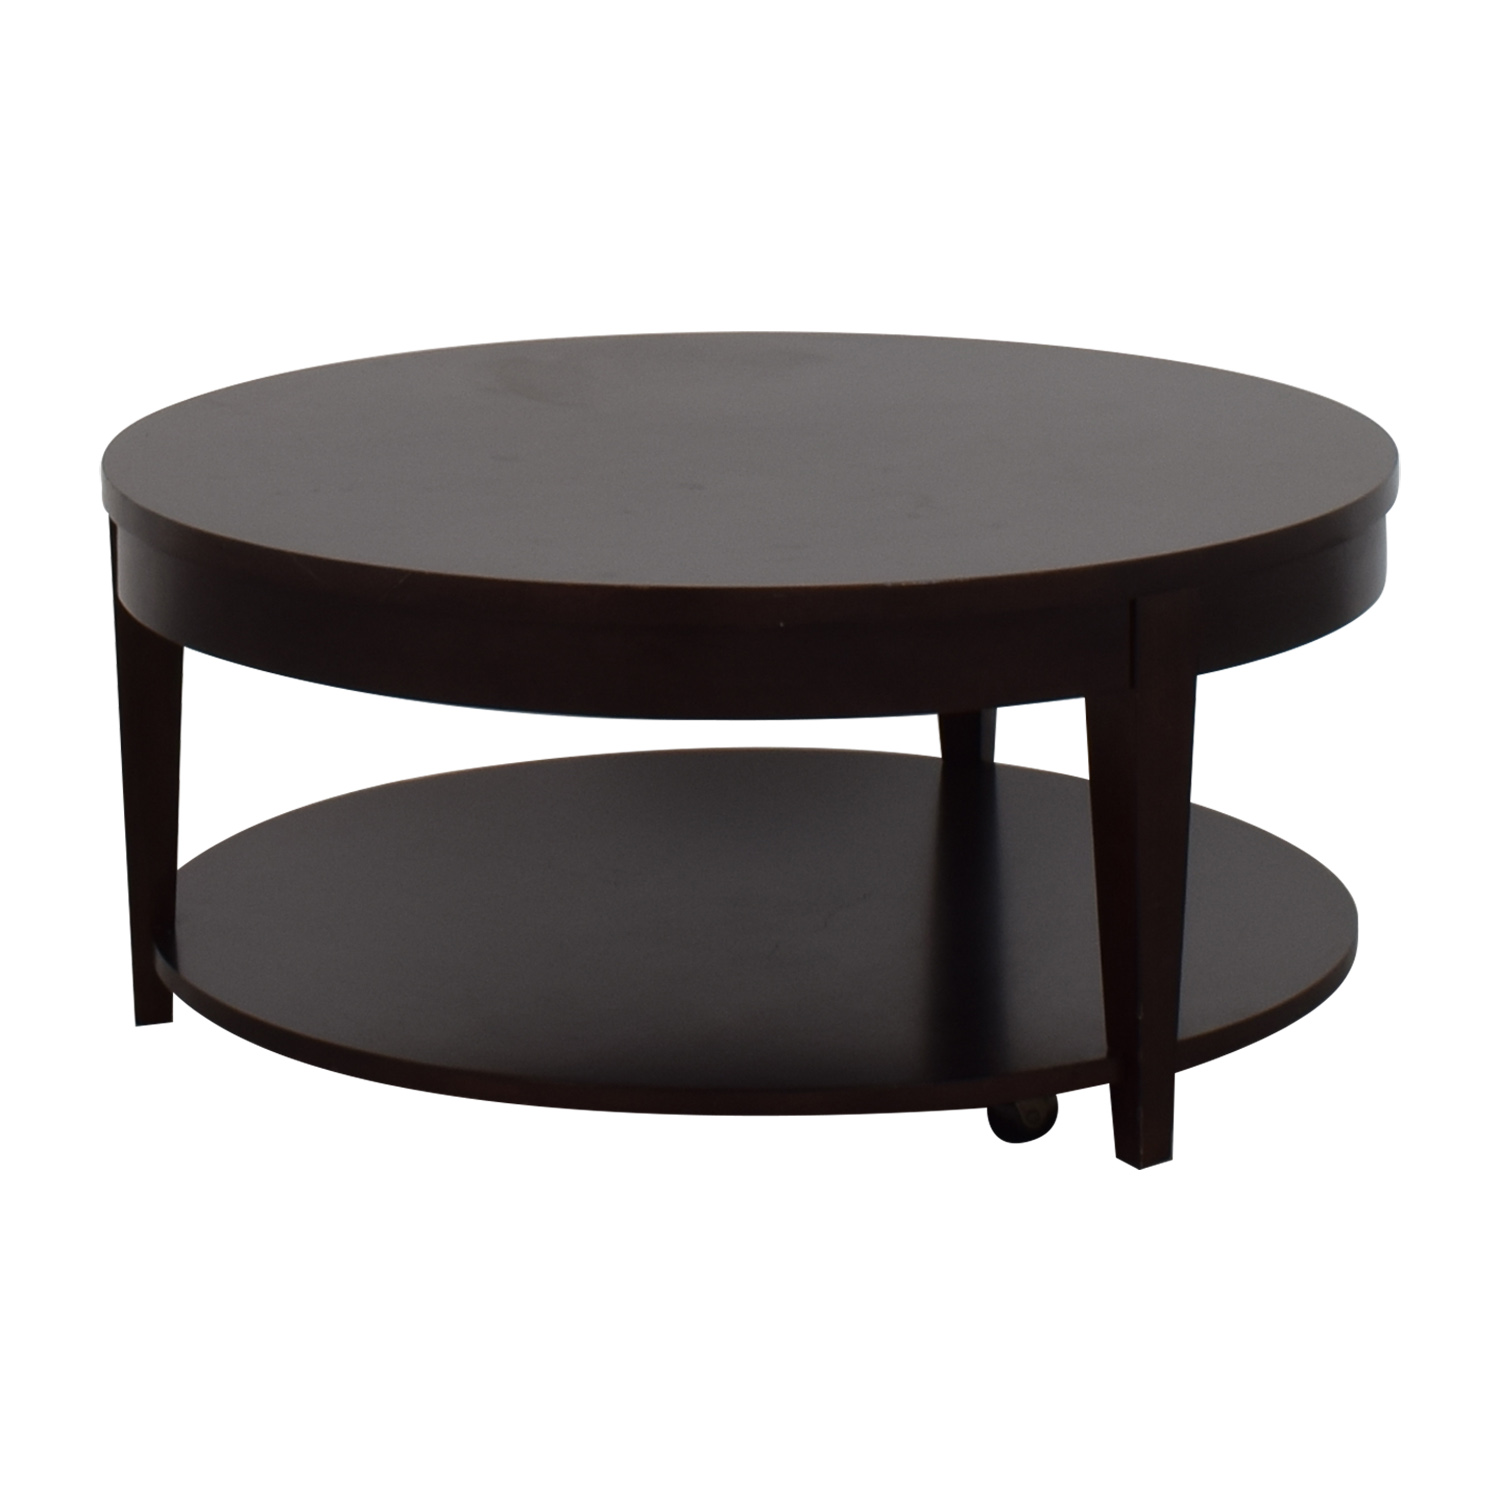 56 Off West Elm West Elm Clover Coffee Table Tables